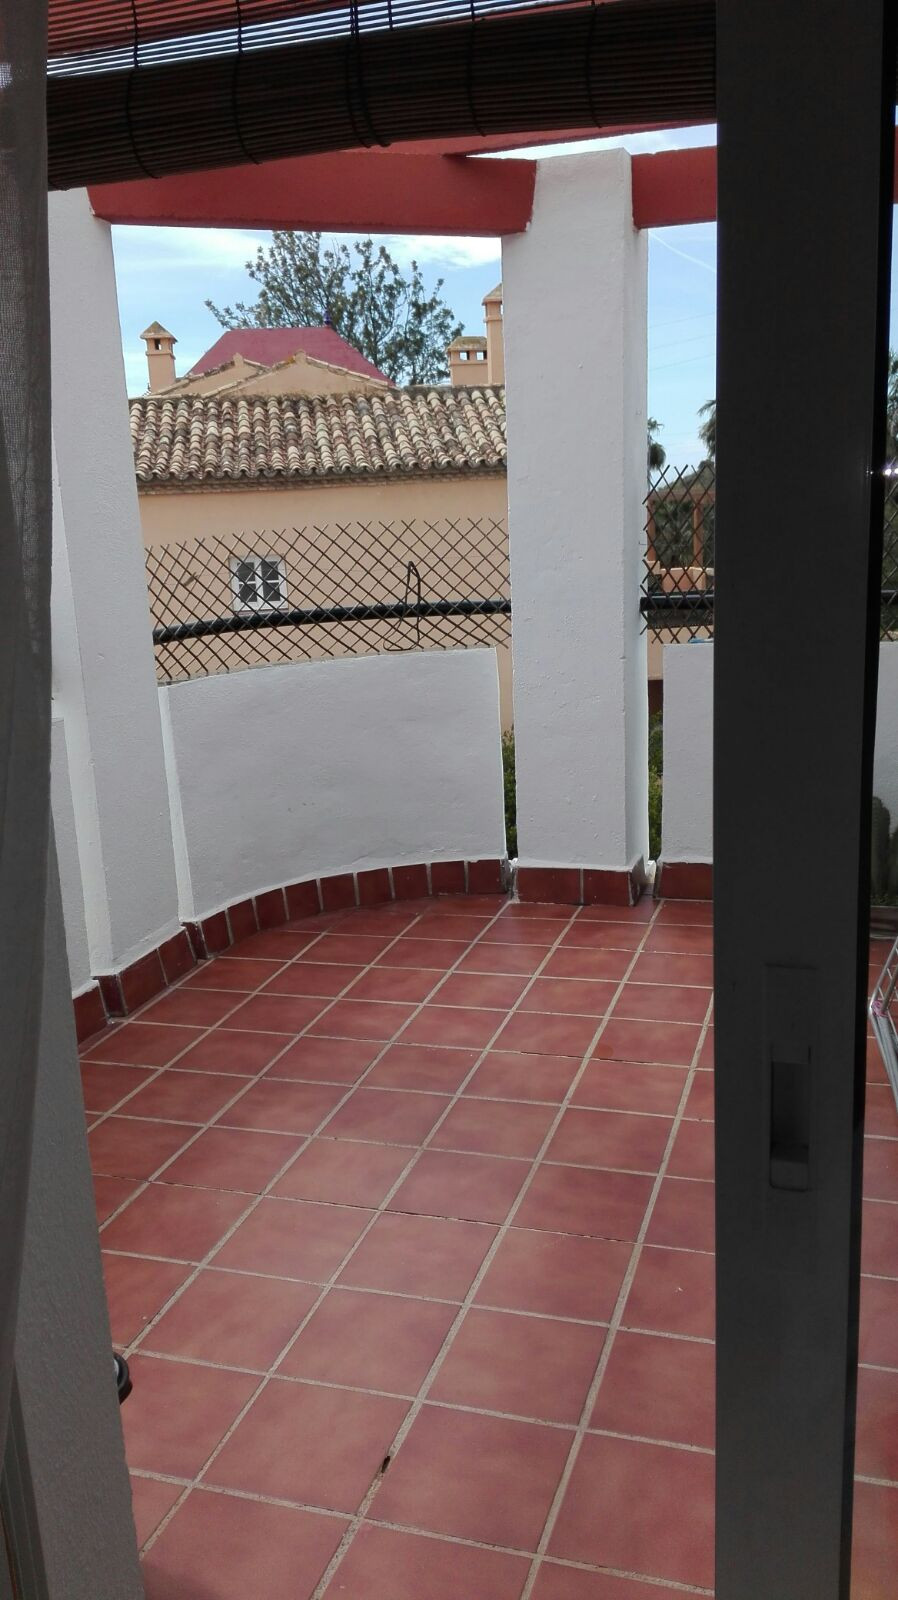 Beautiful penthouse in Riviera, mijas coast / fuengirola with enclosure, terrace and balcony, 2 bedr,Spain